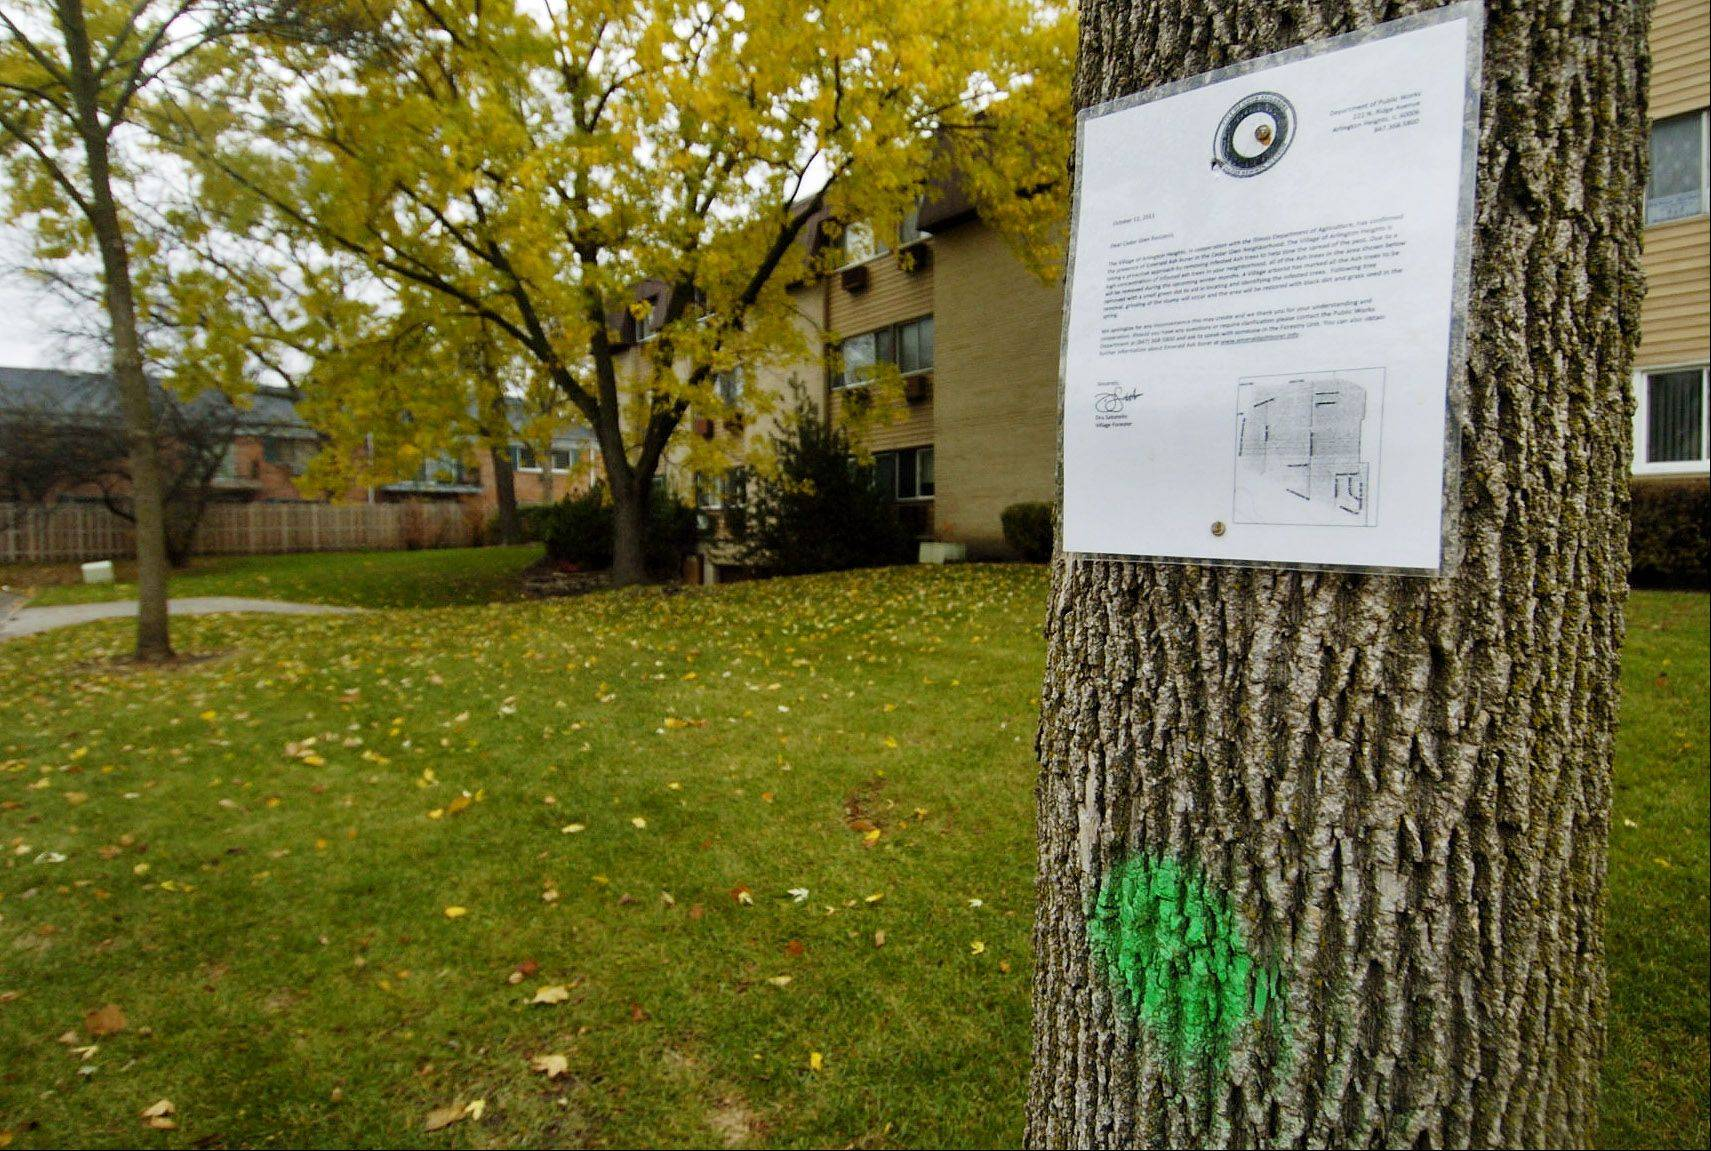 A notice posted by the Village of Arlington Heights explains how trees marked with a green dot will be cut down because of infestation by emerald ash borer. These two trees are in the Cedar Glen neighborhood.